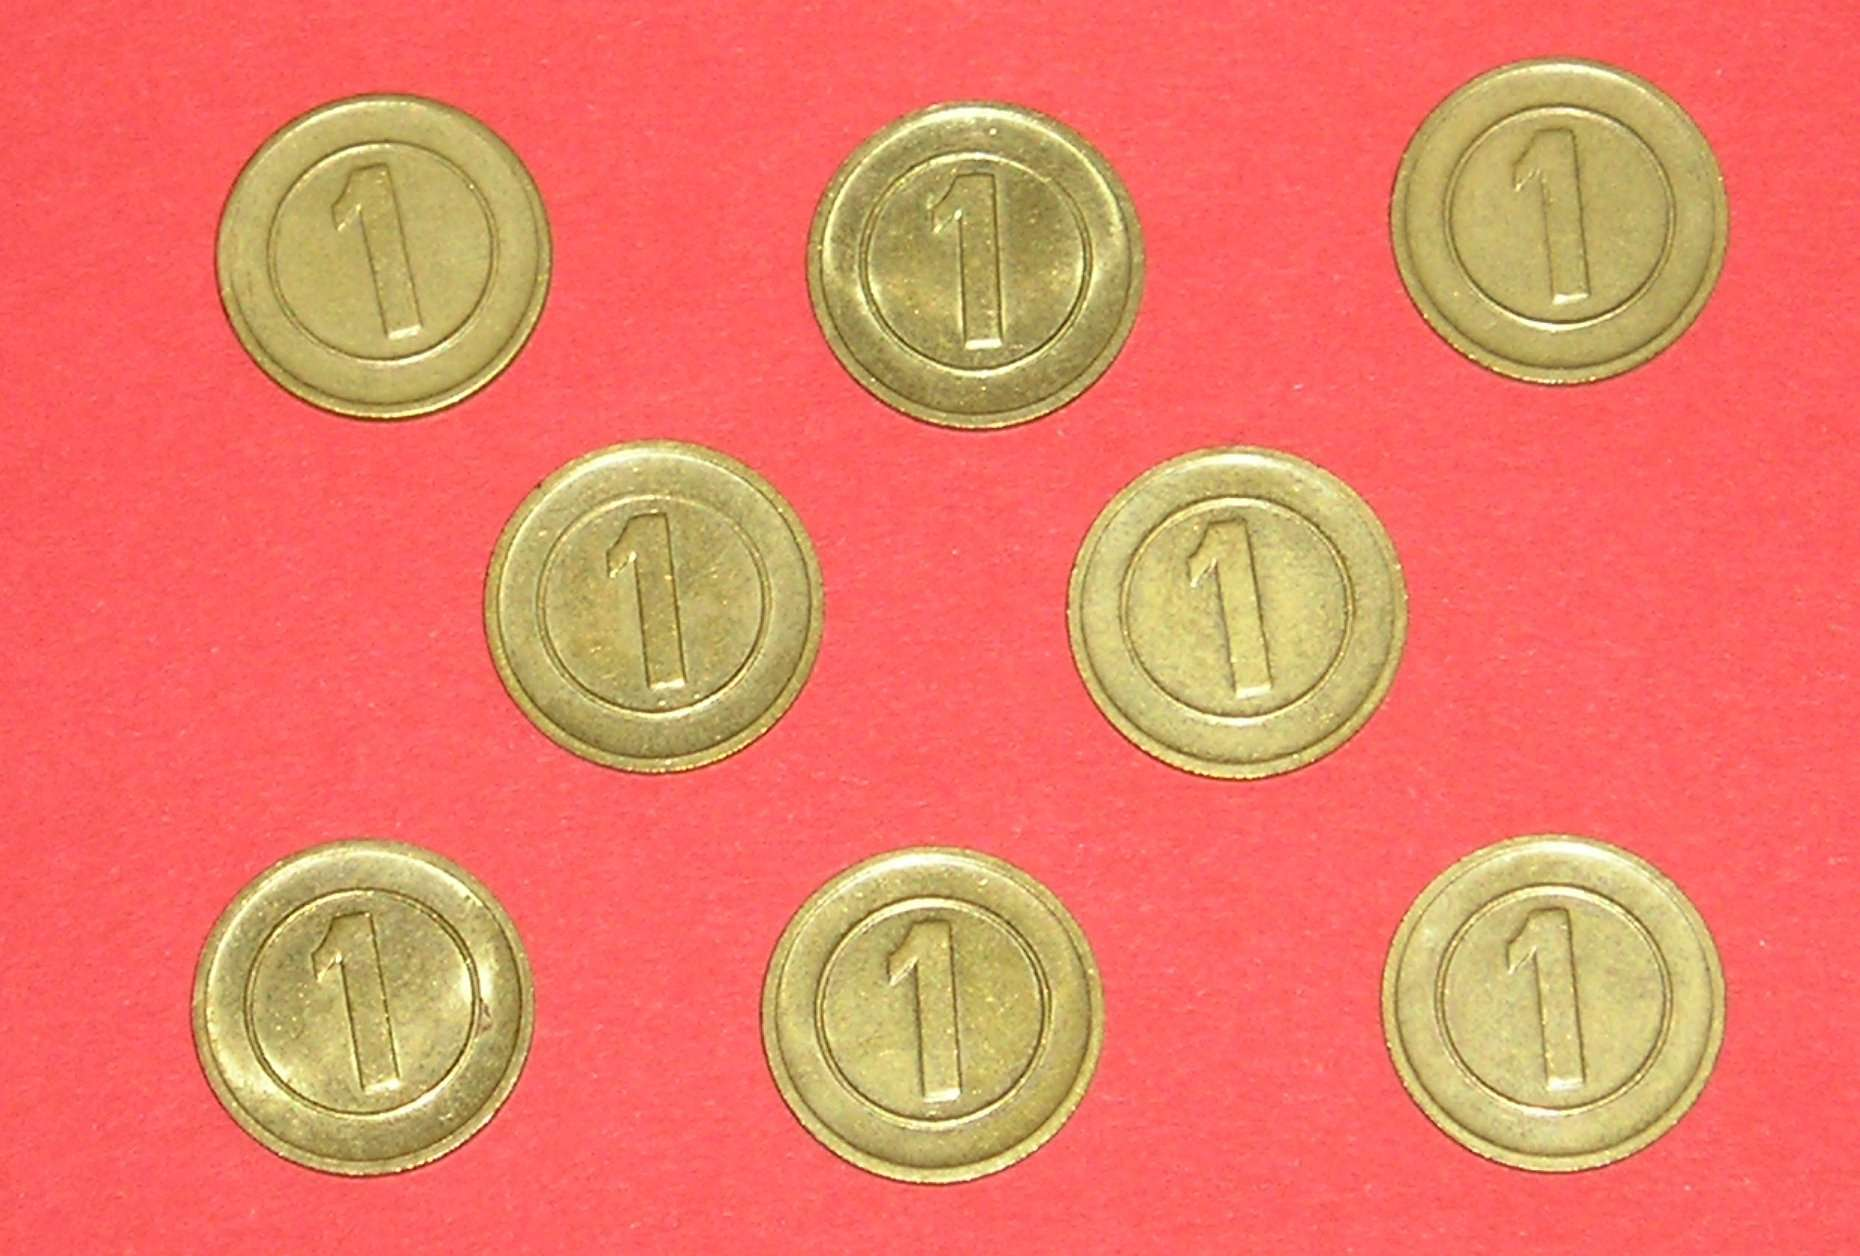 Maxpax One Drink Tokens 1 x 100